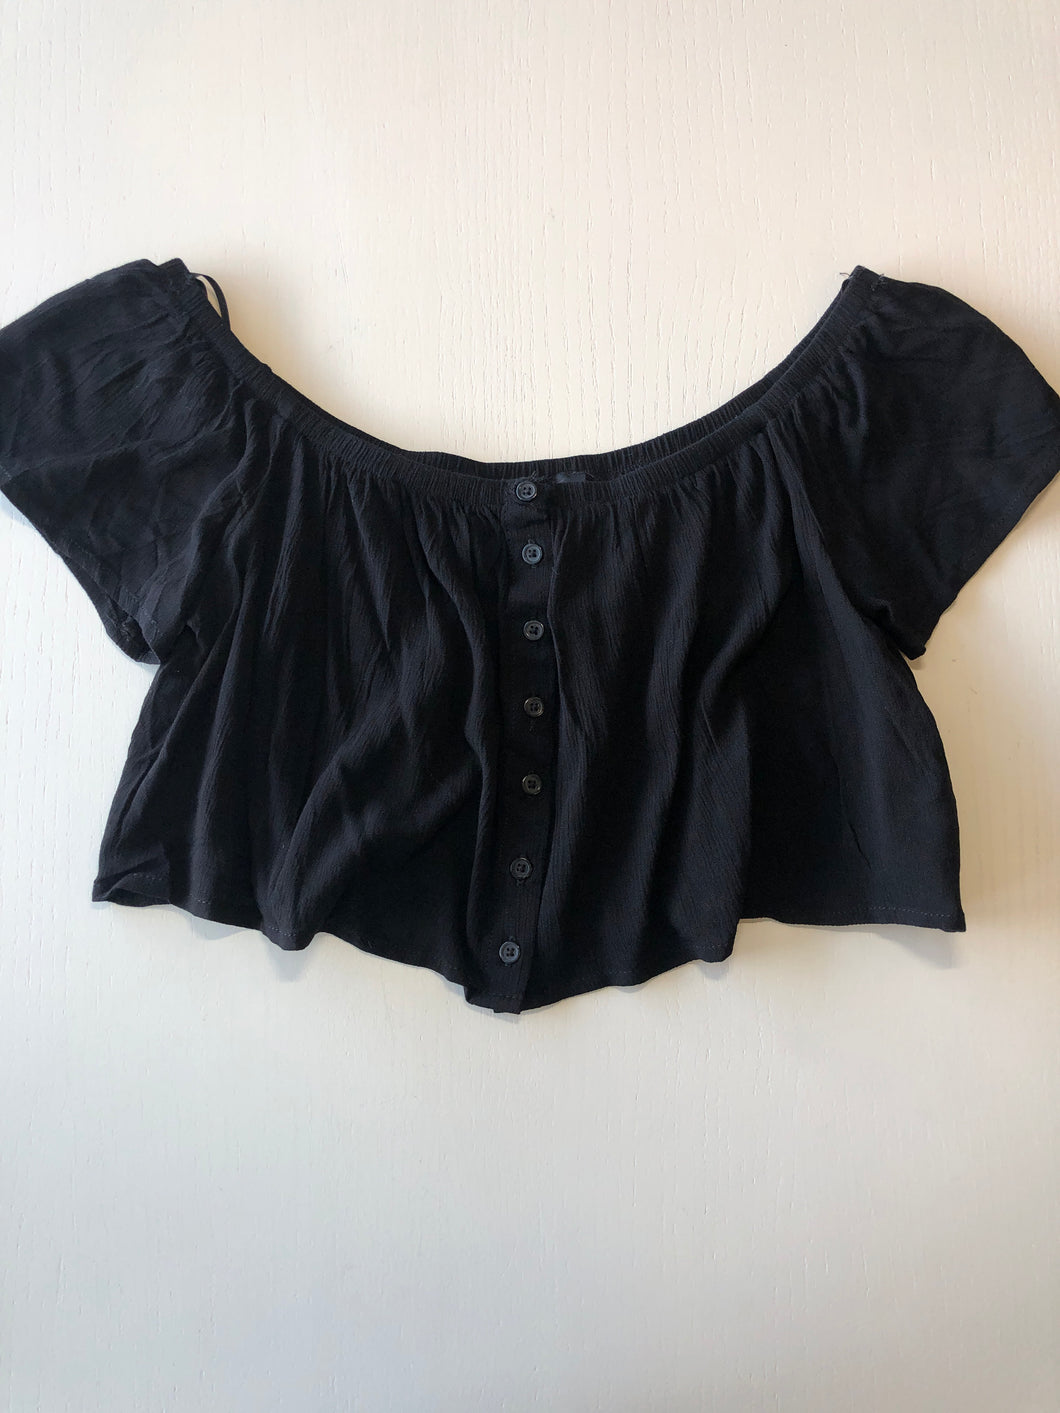 Gently Used Women's Forever 21 Top Size S